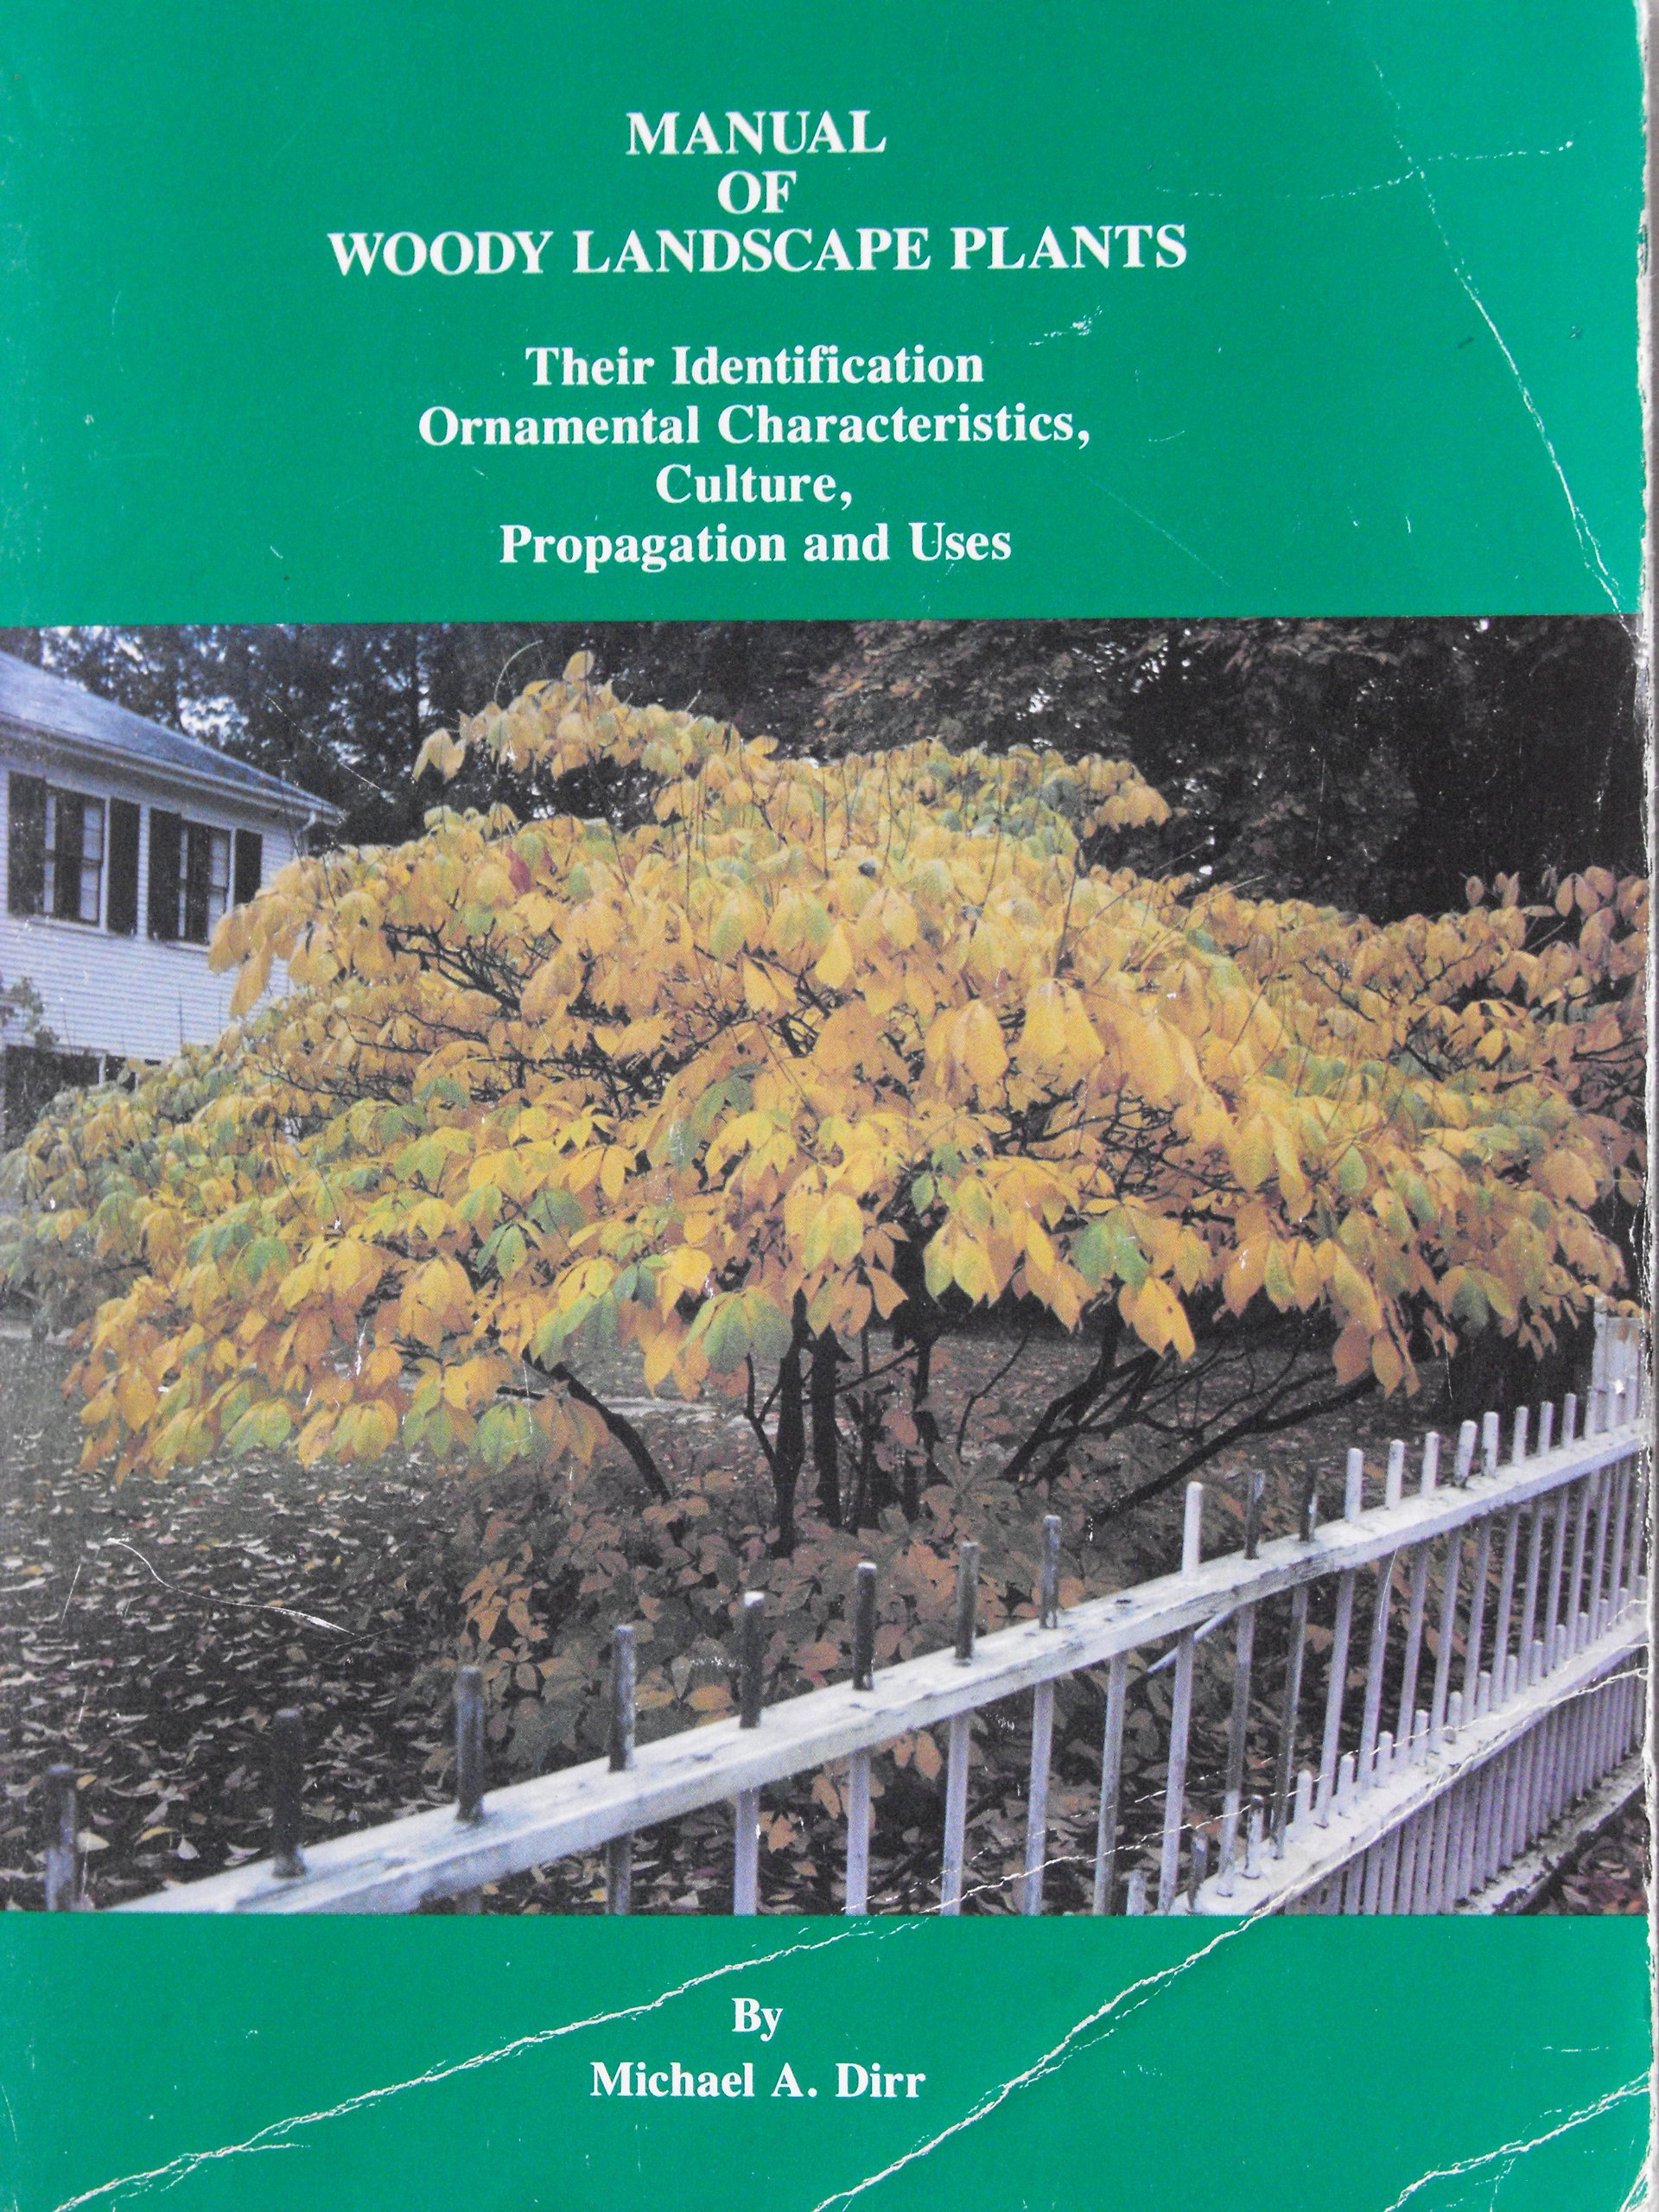 Ornamental Characteristics Propagation and Uses Culture Manual of Woody Landscape Plants: Their Identification